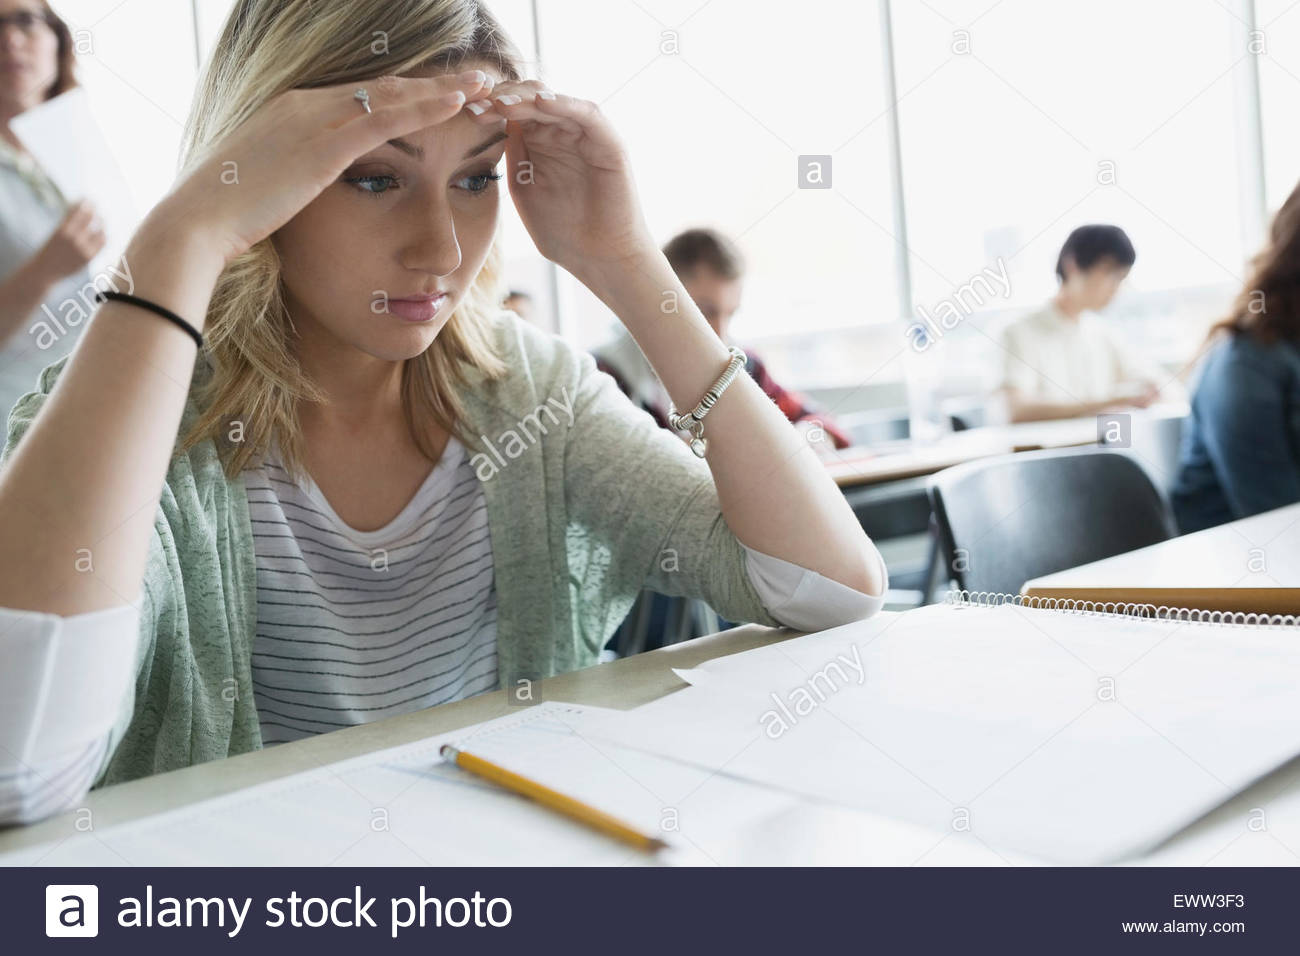 Stressed college student looking down at exam classroom - Stock Image